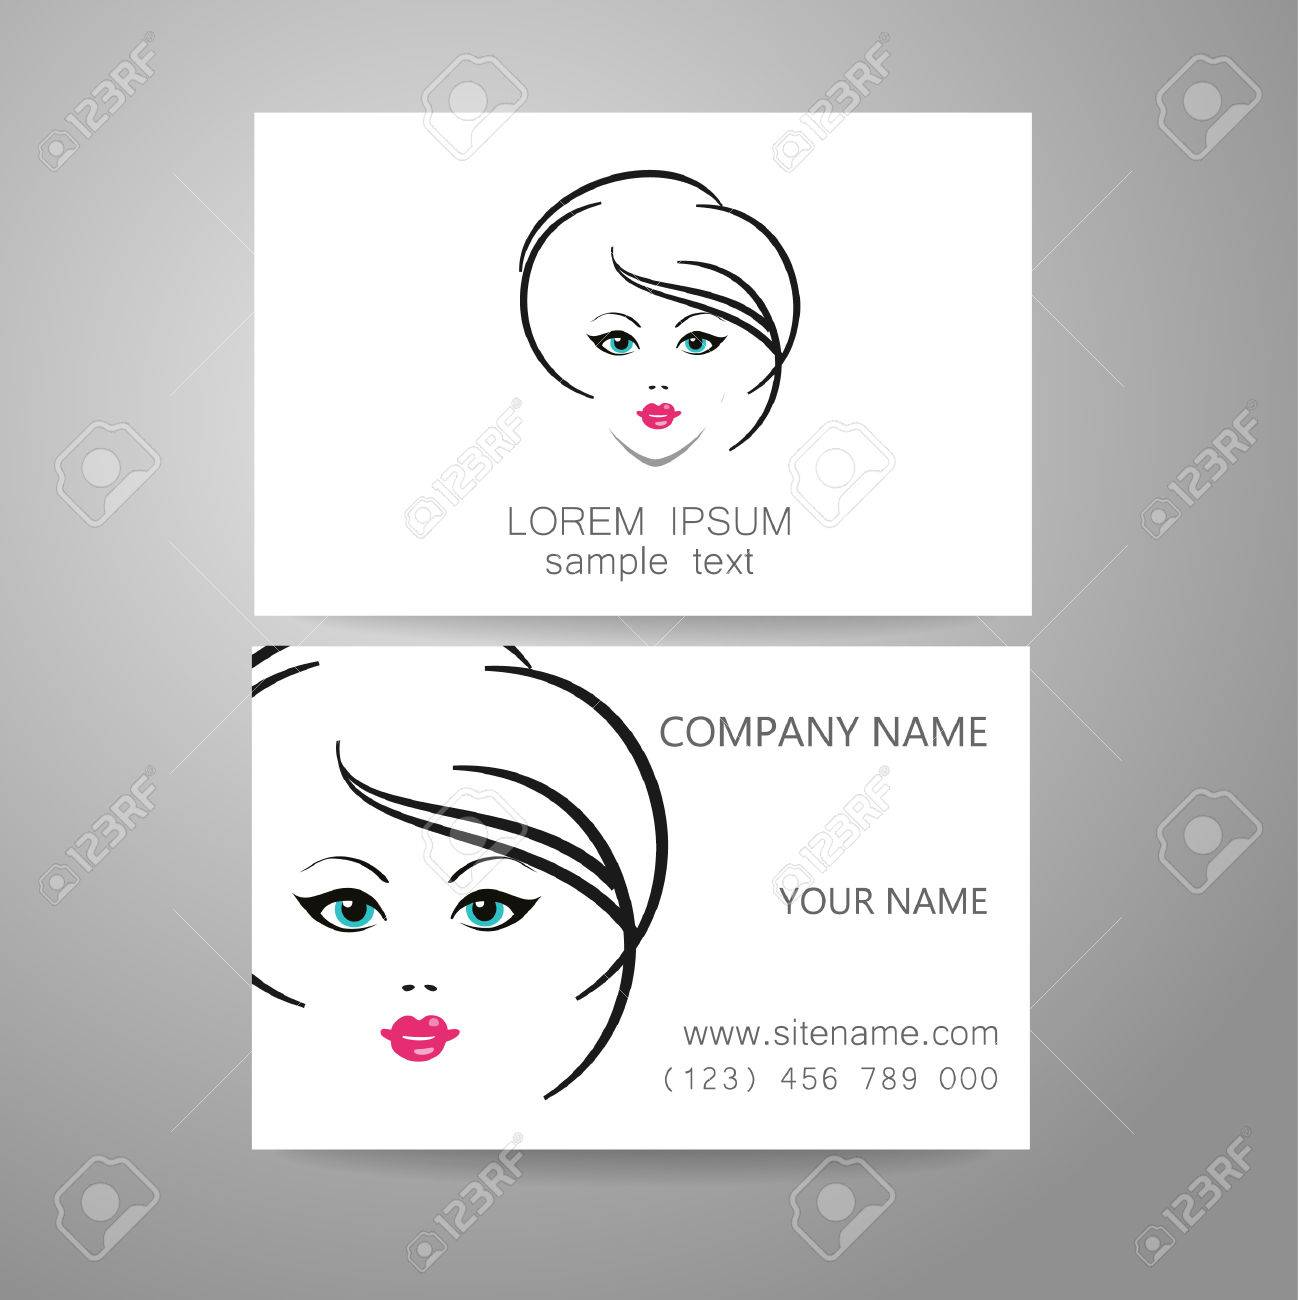 Business Cards For Hair Salon Image collections - Free Business Cards